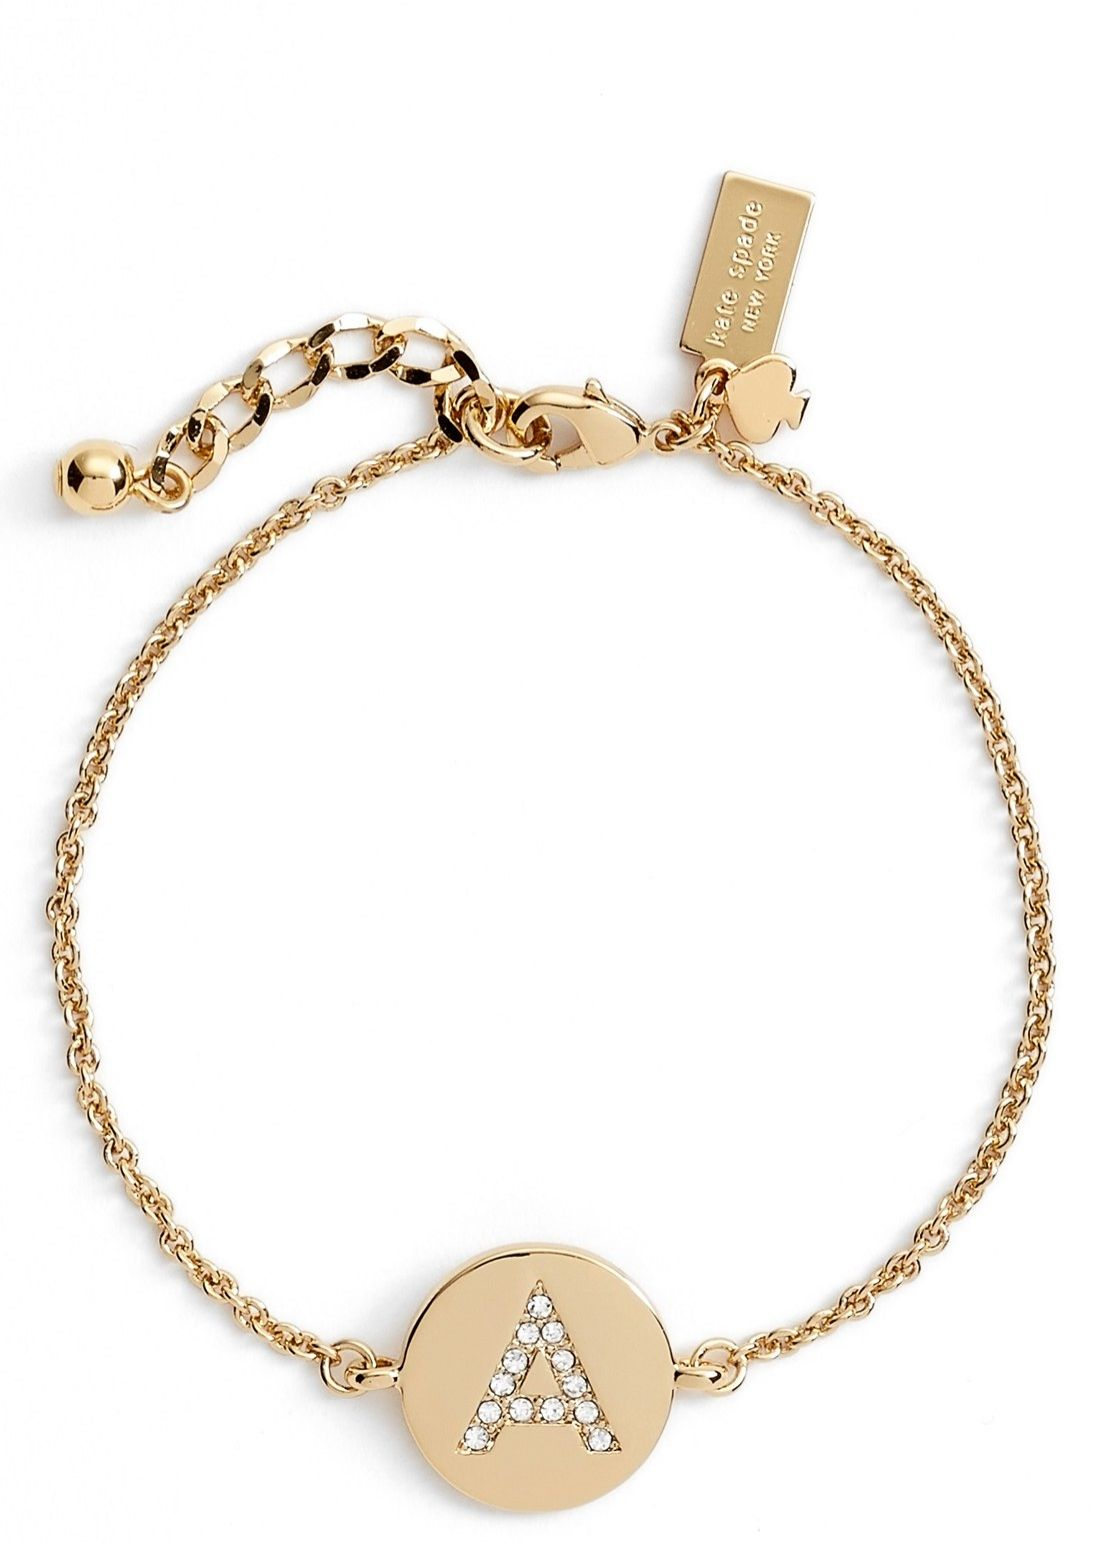 The crystals on this dainty kate spade initial charm bracelet add the crystals on this dainty kate spade initial charm bracelet add just the perfect amount of mozeypictures Image collections